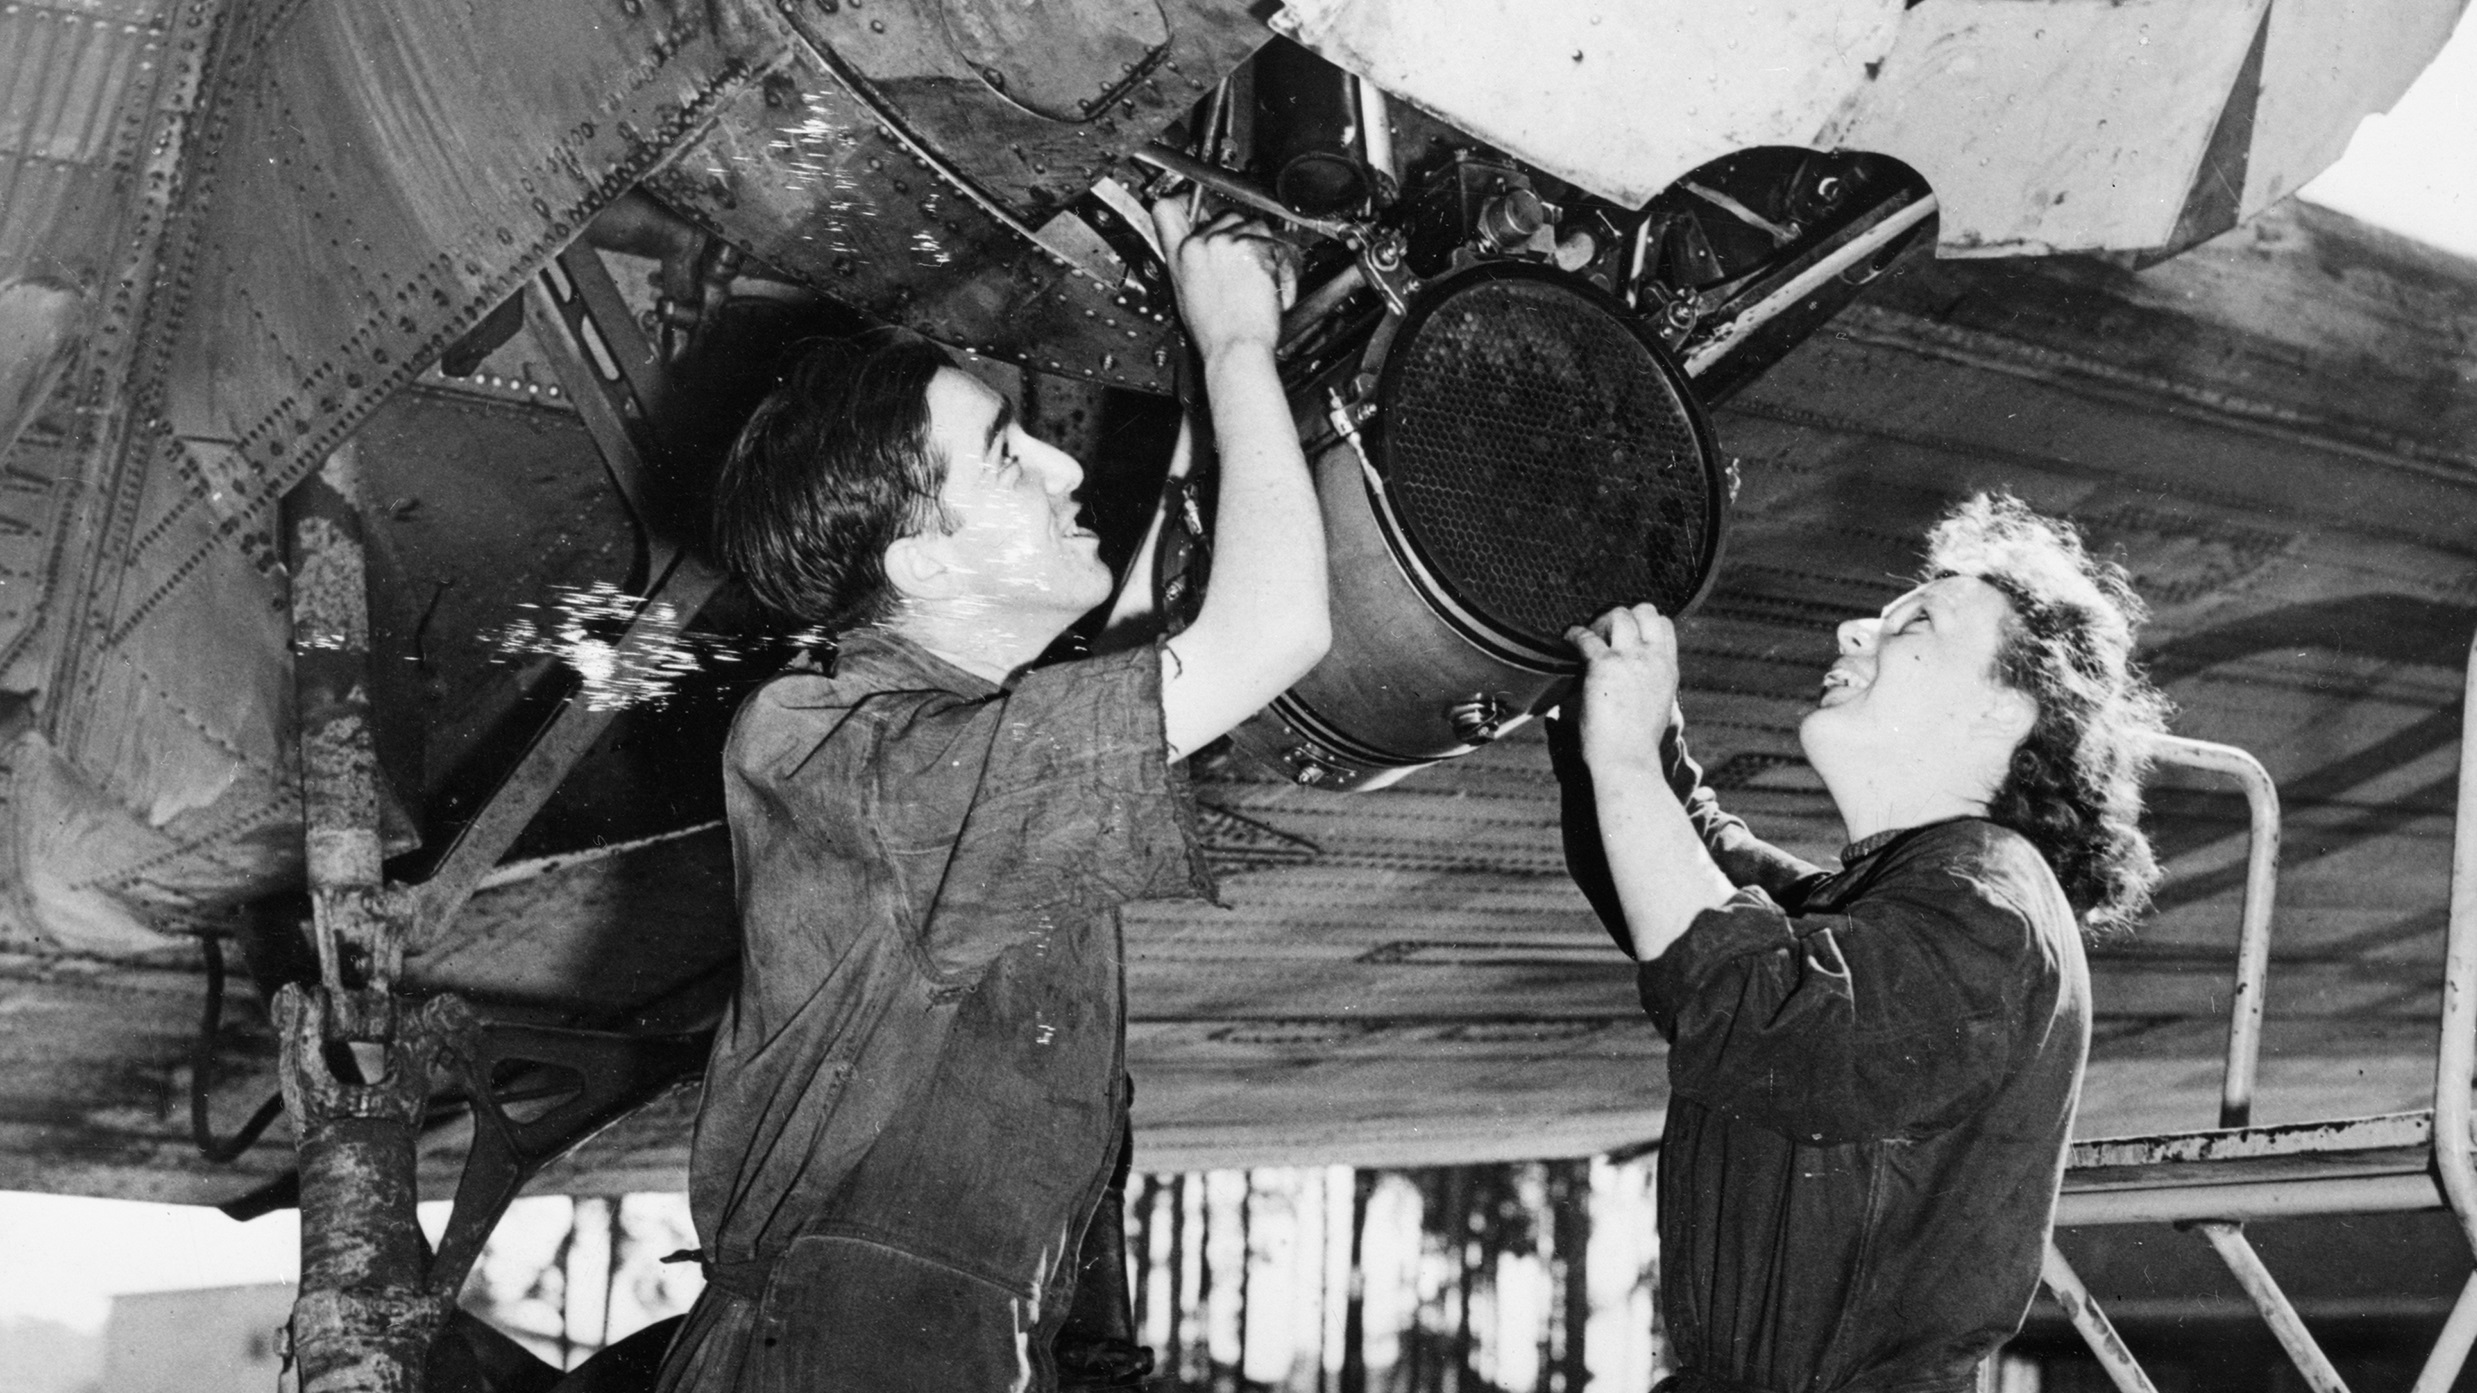 RAF and WRAF fitters working on the engine of an aircraft at Gatow. The WRAF fitter, Corporal Fisher, thought nothing of working 16 hours if necessary and was decorated for her outstanding service.